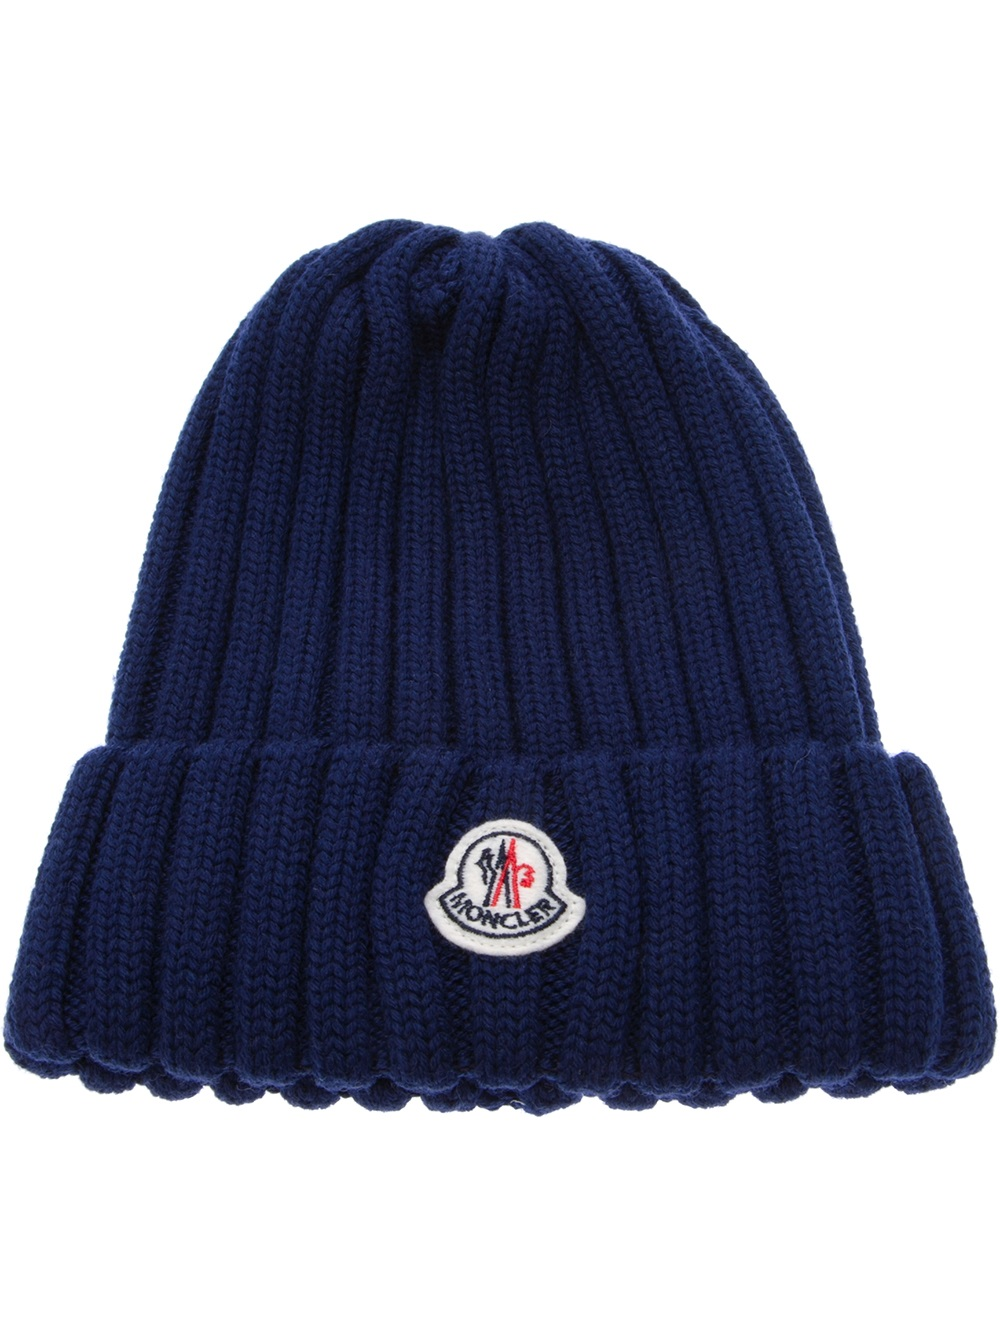 9ce1adf0a Moncler Blue Wool Ribbed Knit Beanie Hat for men